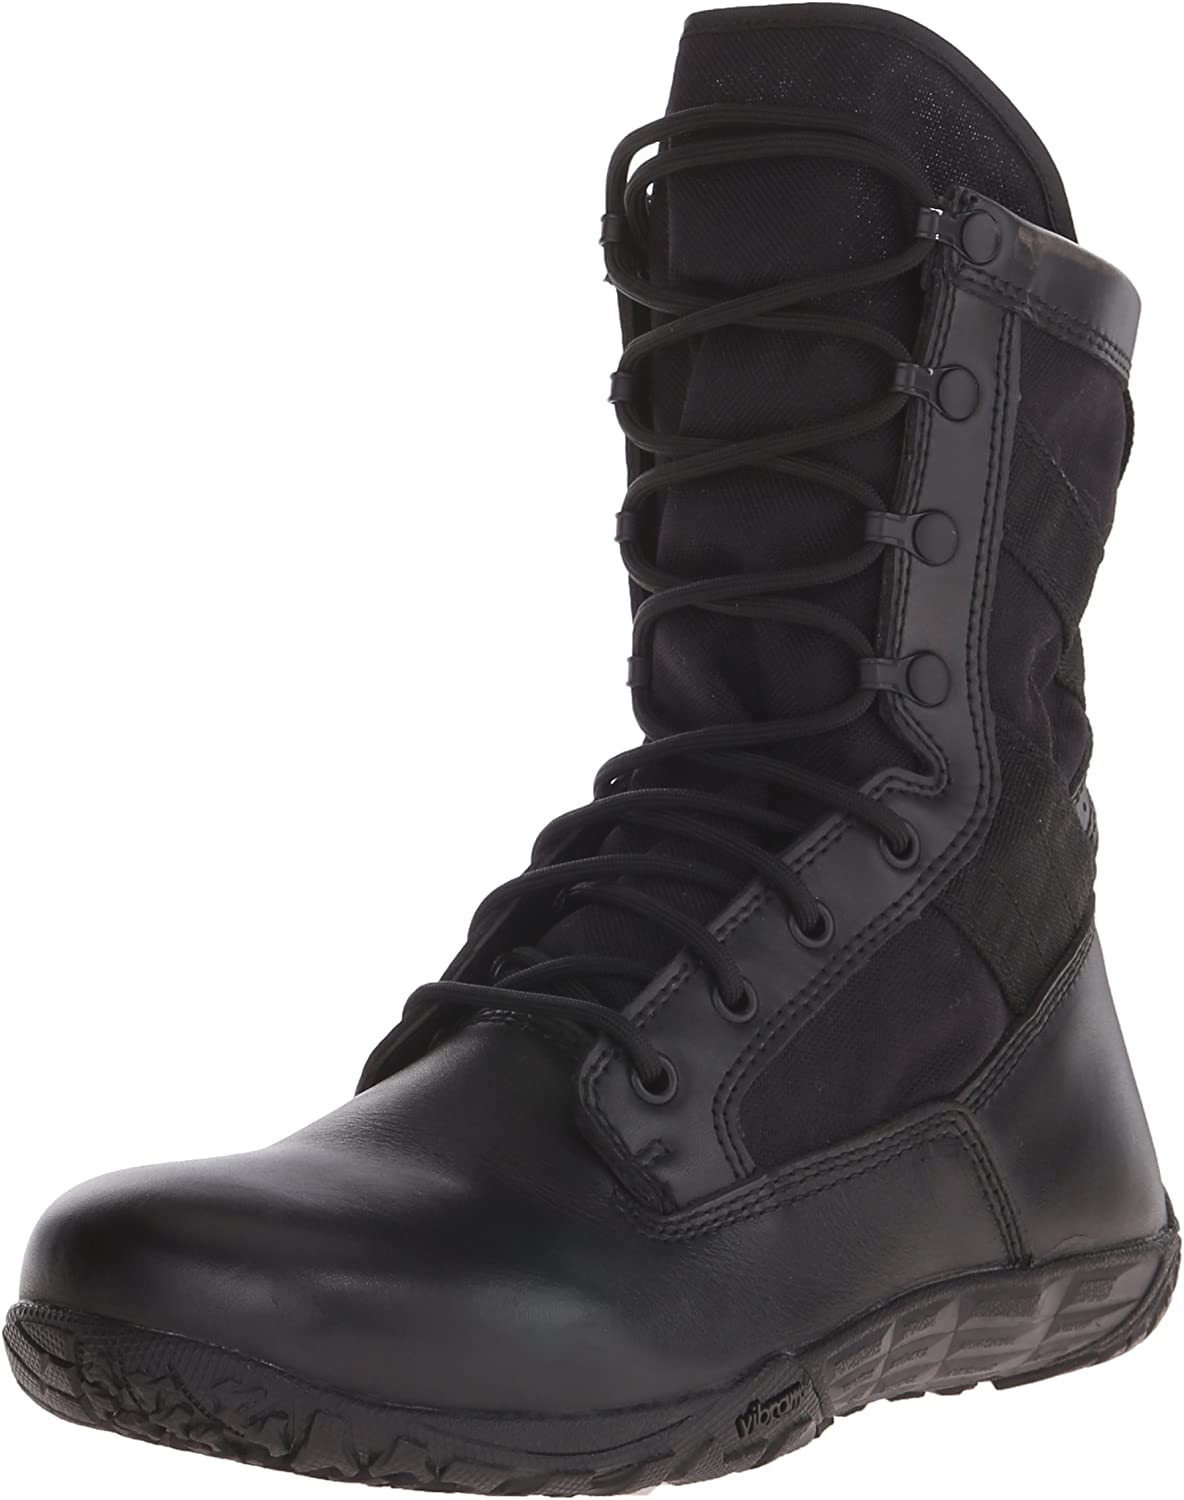 Tactical Research TR102 Mini-Mil Ultra Light Black Boots 140R